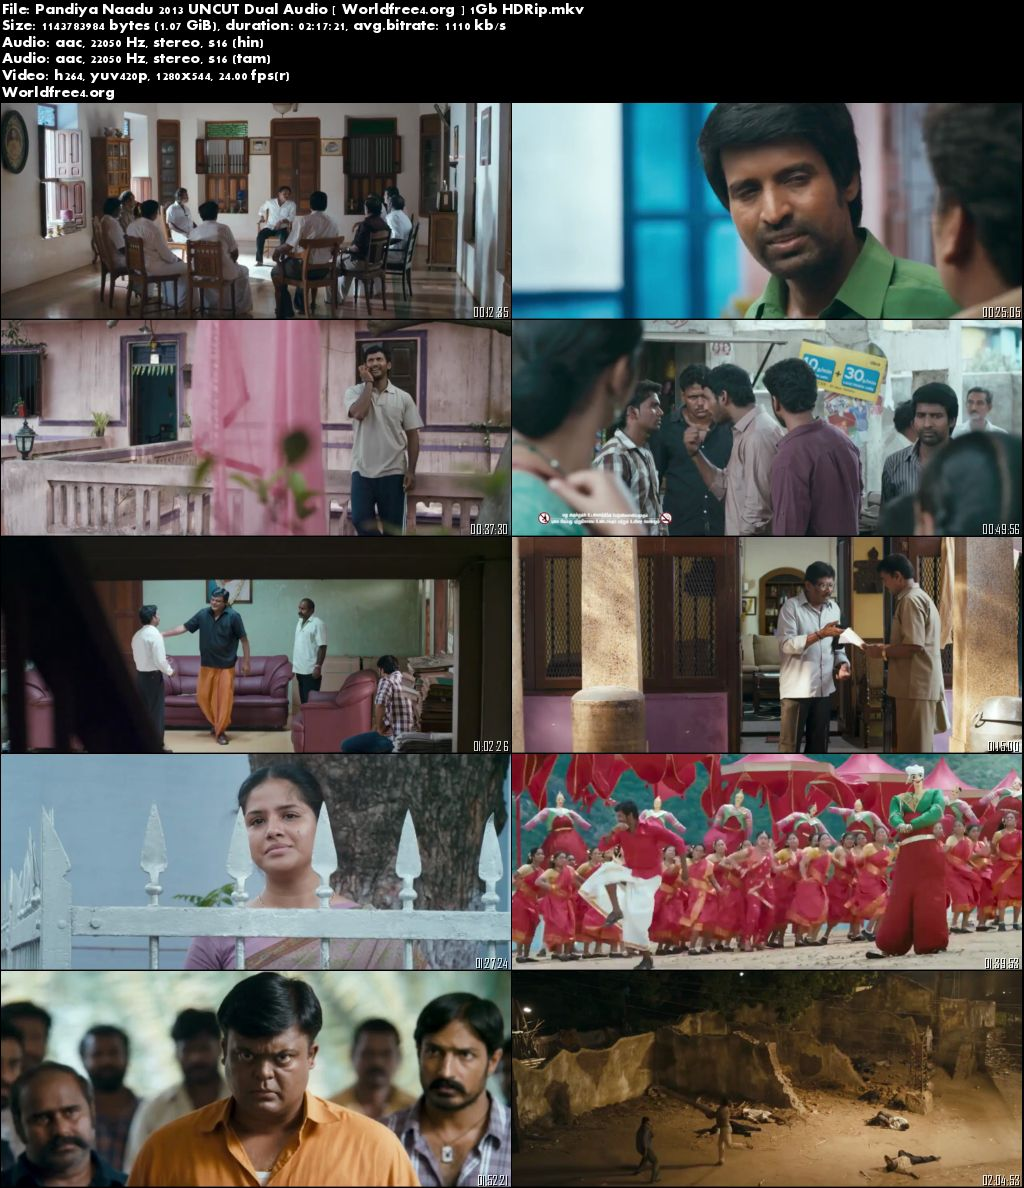 Pandiya Naadu 2013 HDRip Dual Audio 400MB Download 480p Download